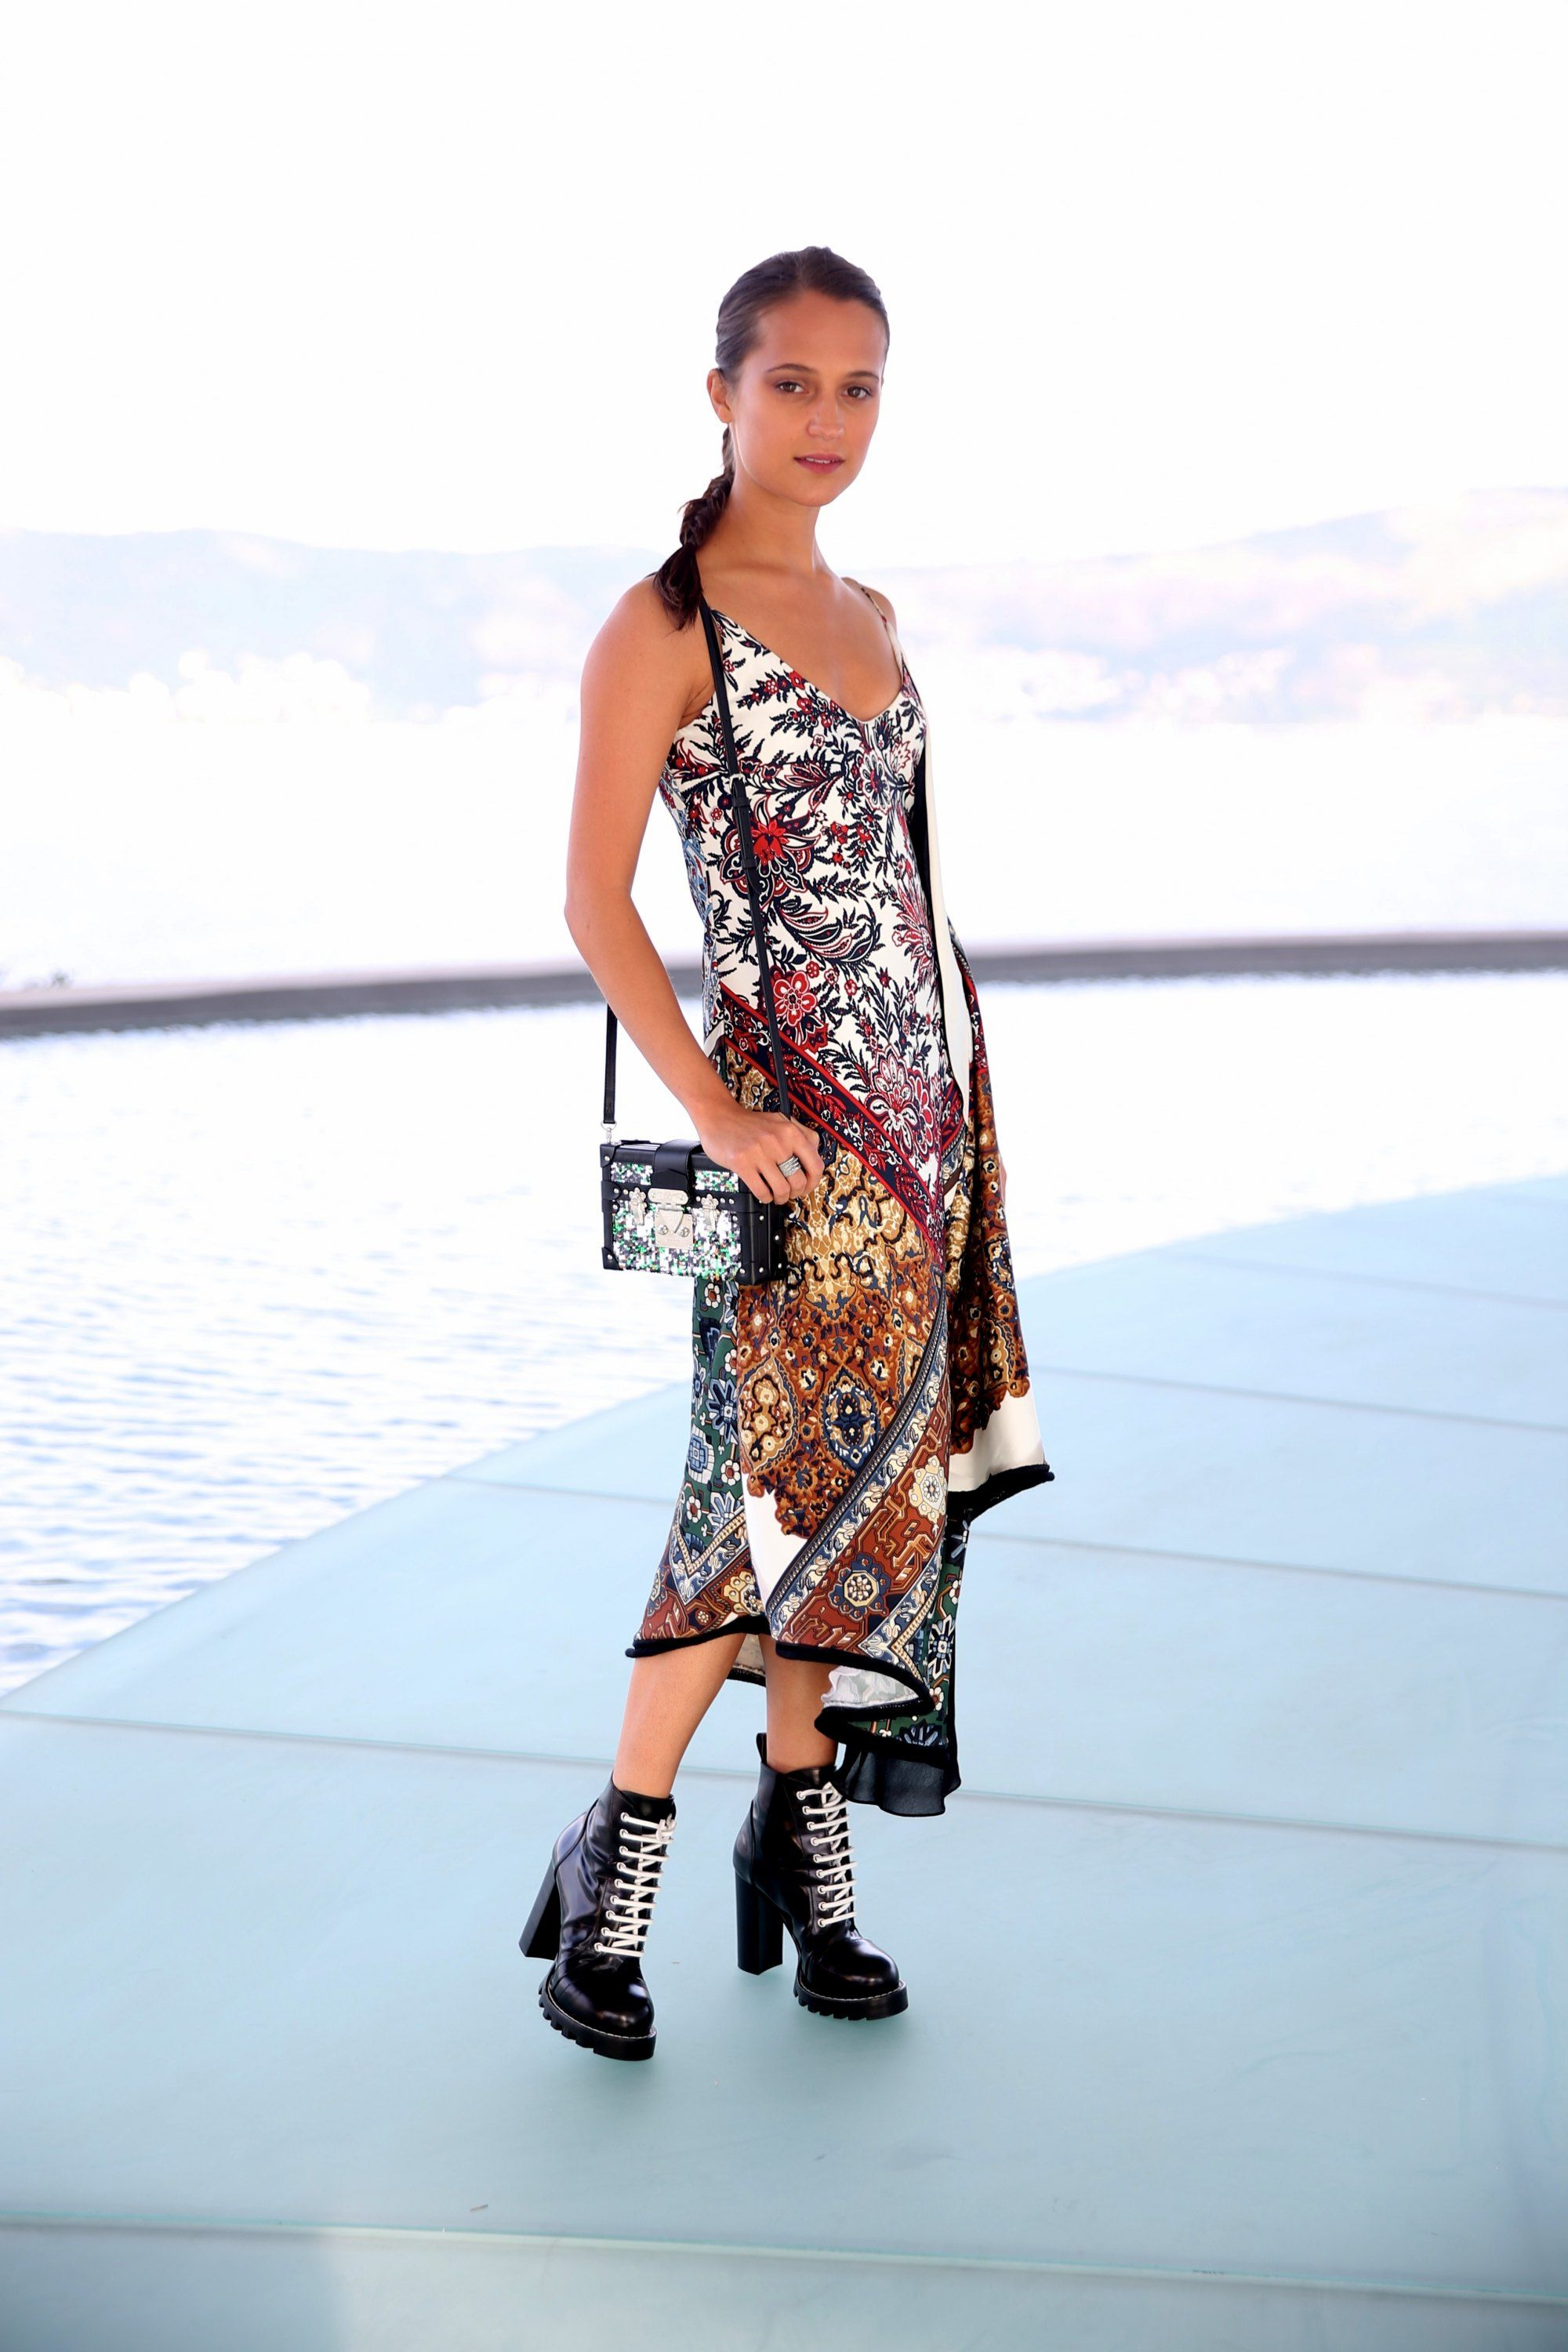 667c3305ee Alicia Vikander – Louis Vuitton's 2017 Cruise Collection show, Rio ...